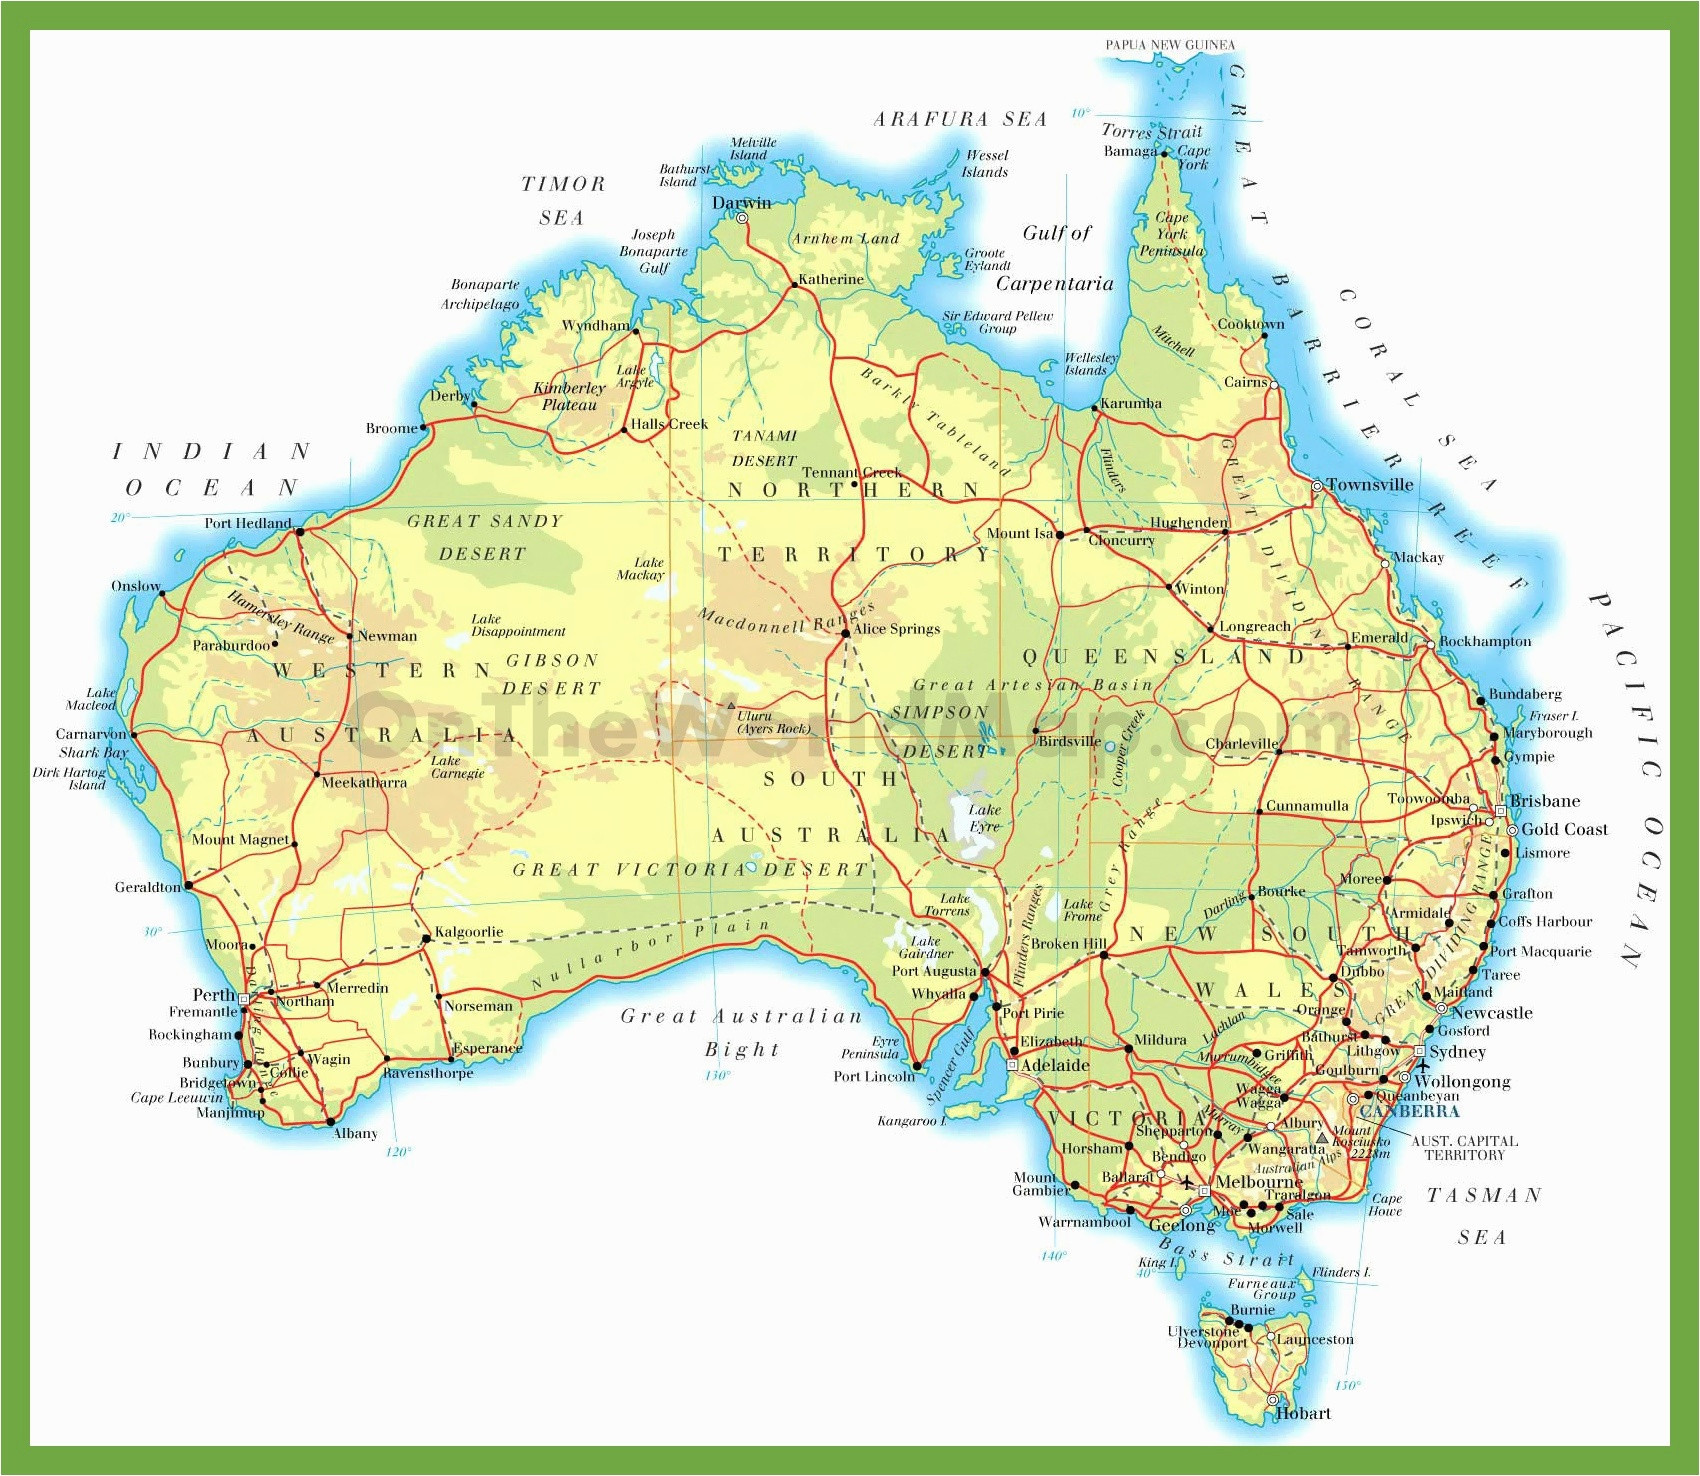 Printable Map September 2018 Awesome Printable World Maps for Students Example How to Draw Map